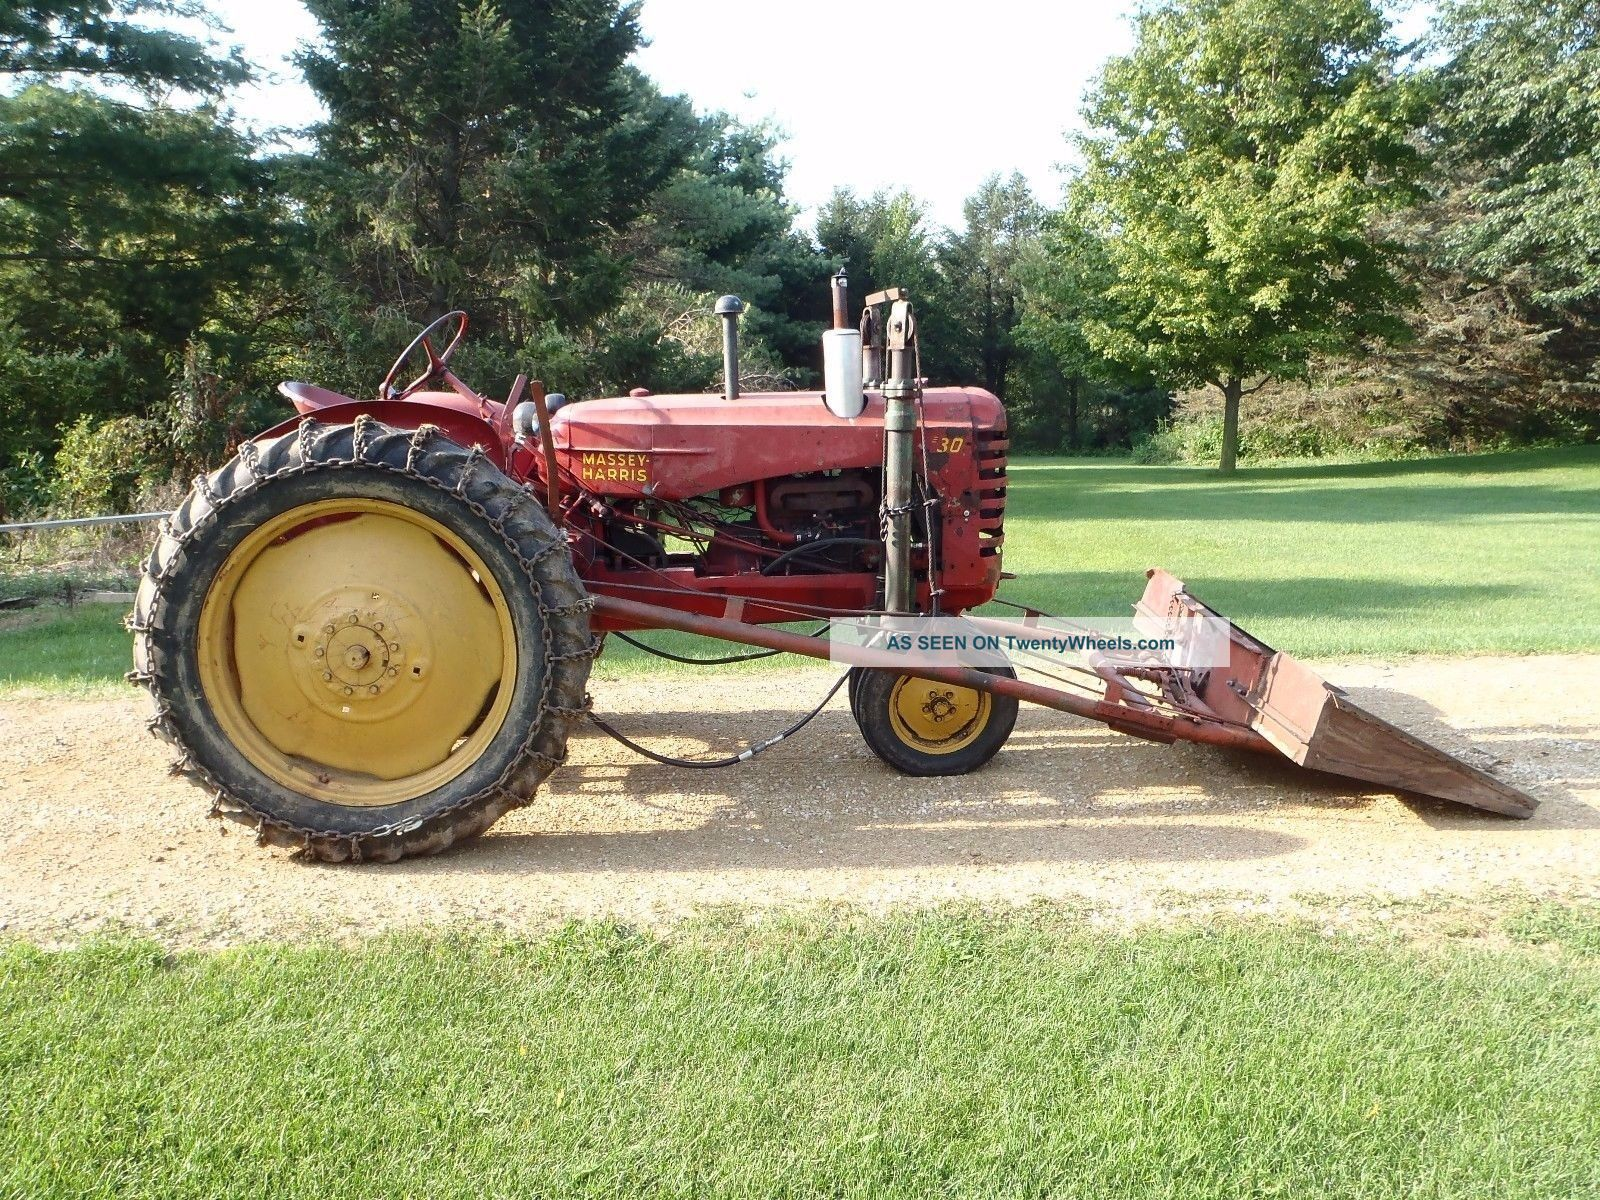 Antique 1951 Massey Harris 30 Farm Tractor With Rare Loader  Vintage Antique & Vintage Farm Equip photo